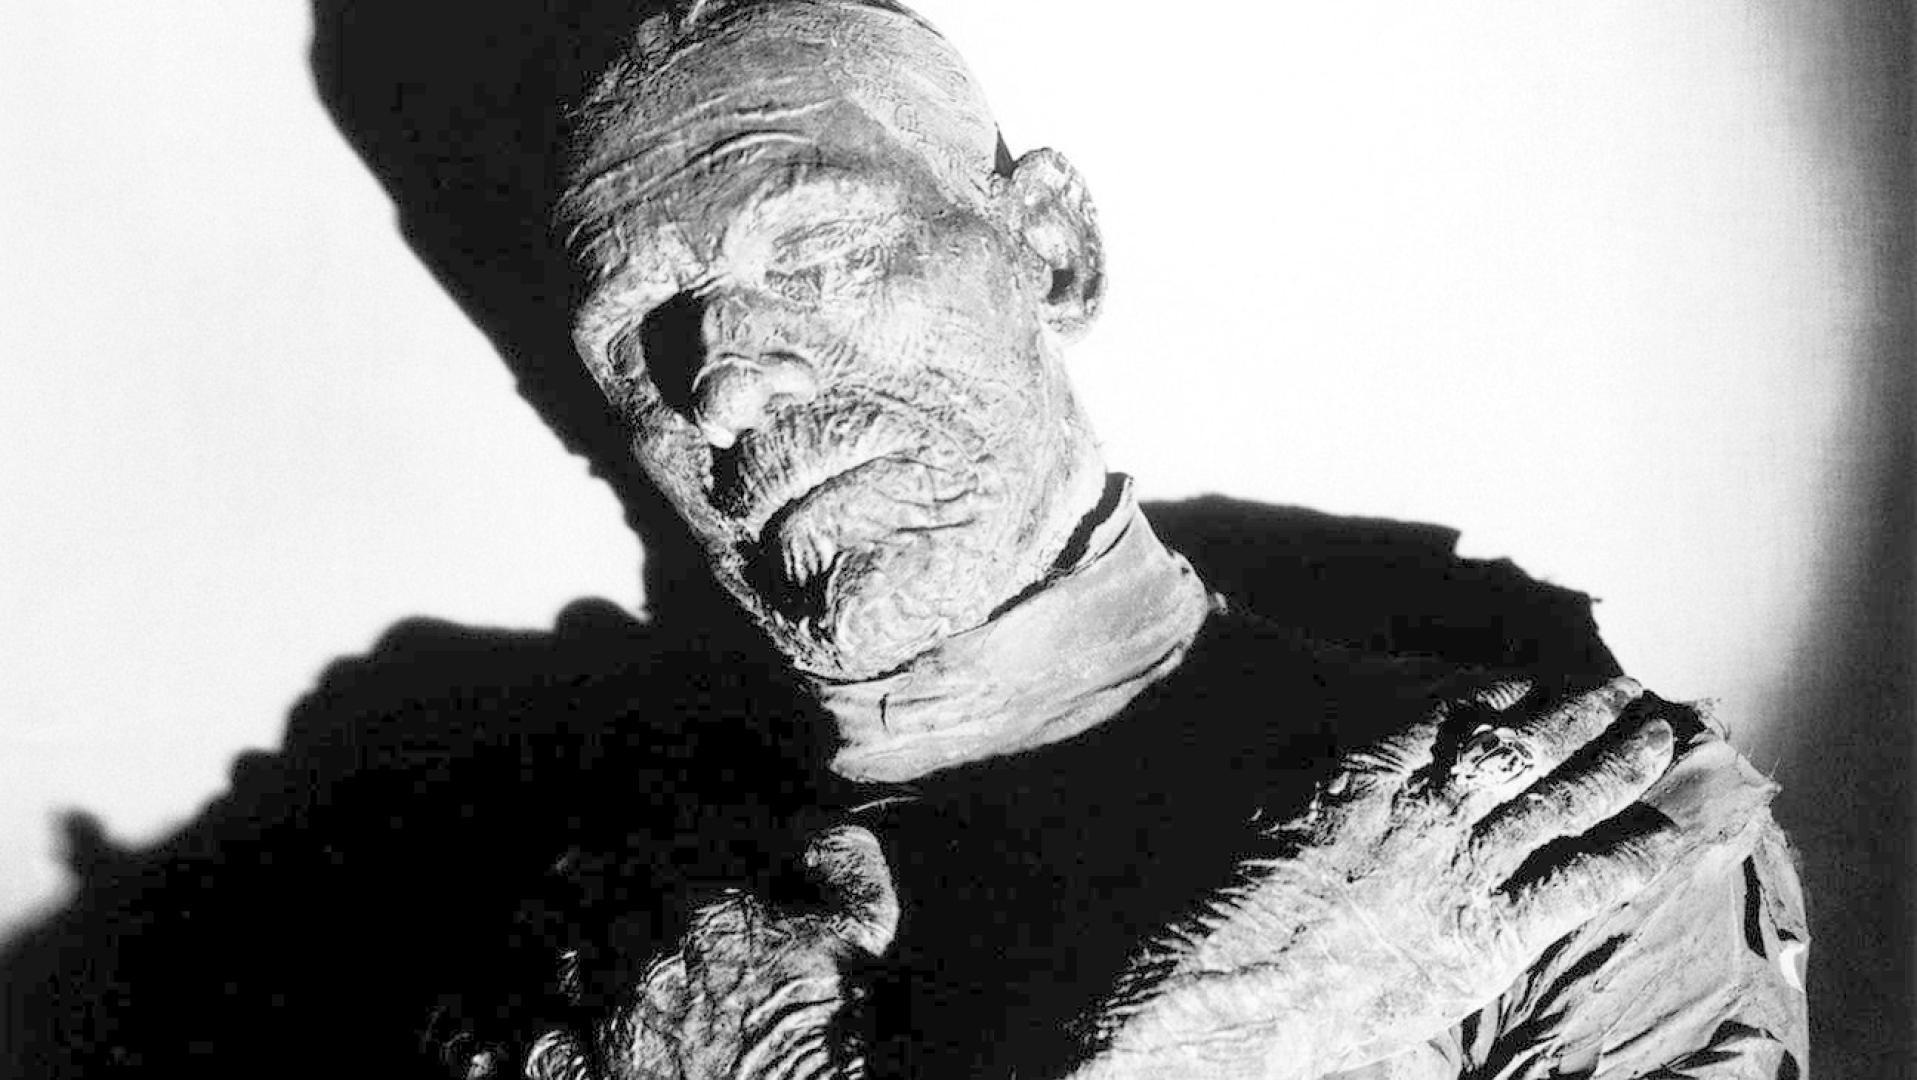 The Mummy - A múmia (1932) 2. kép